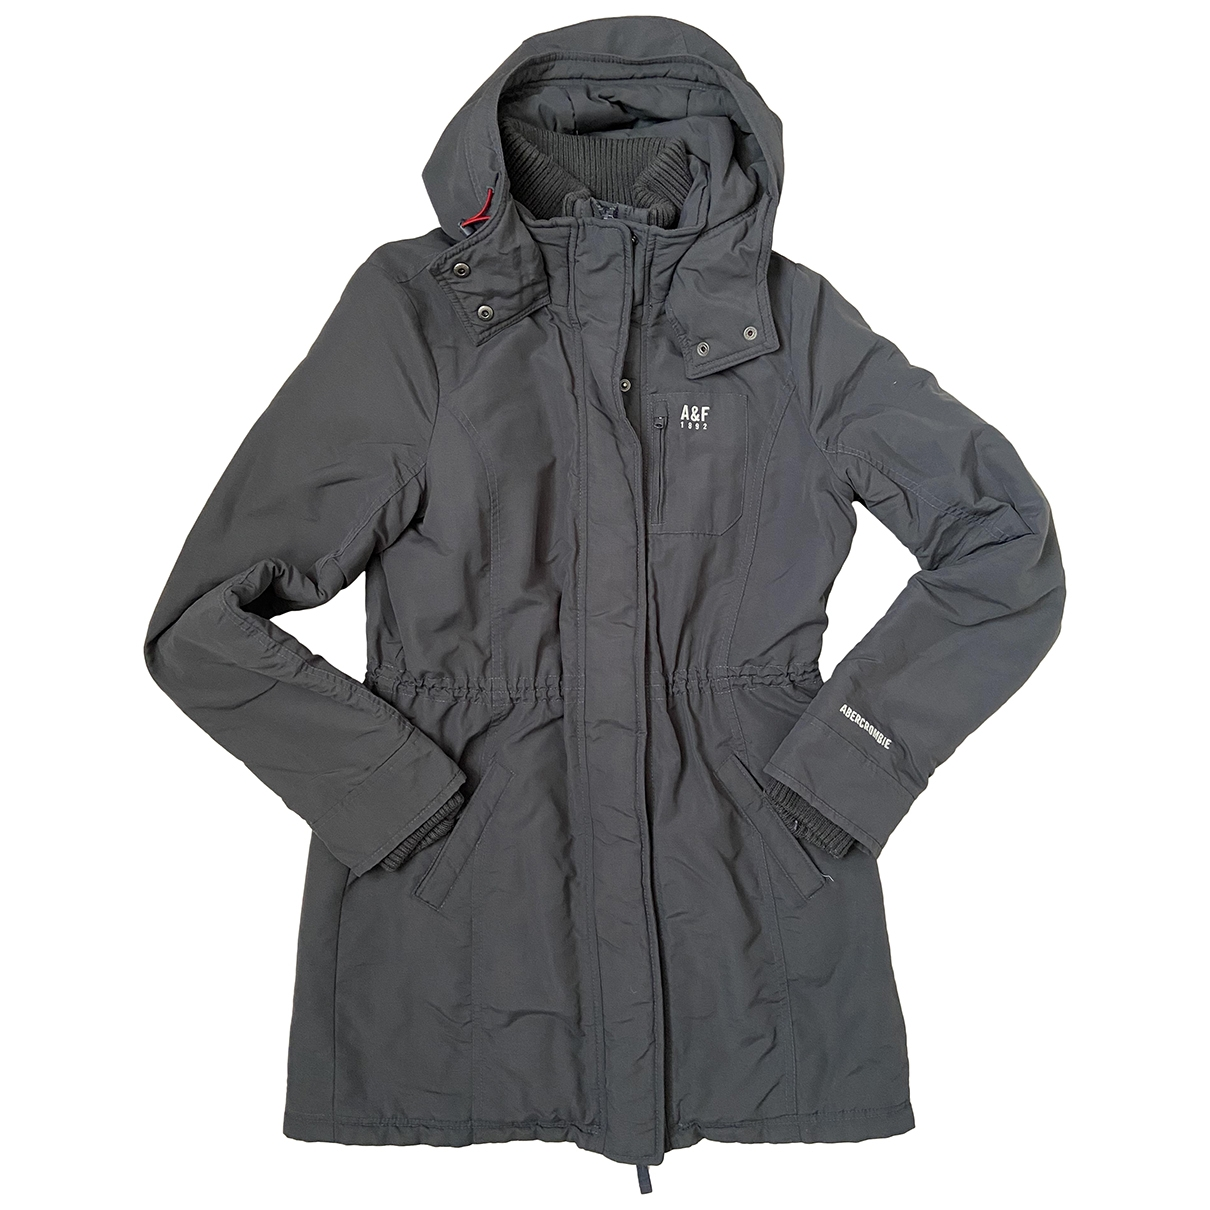 Abercrombie & Fitch \N Grey coat for Women 38 FR